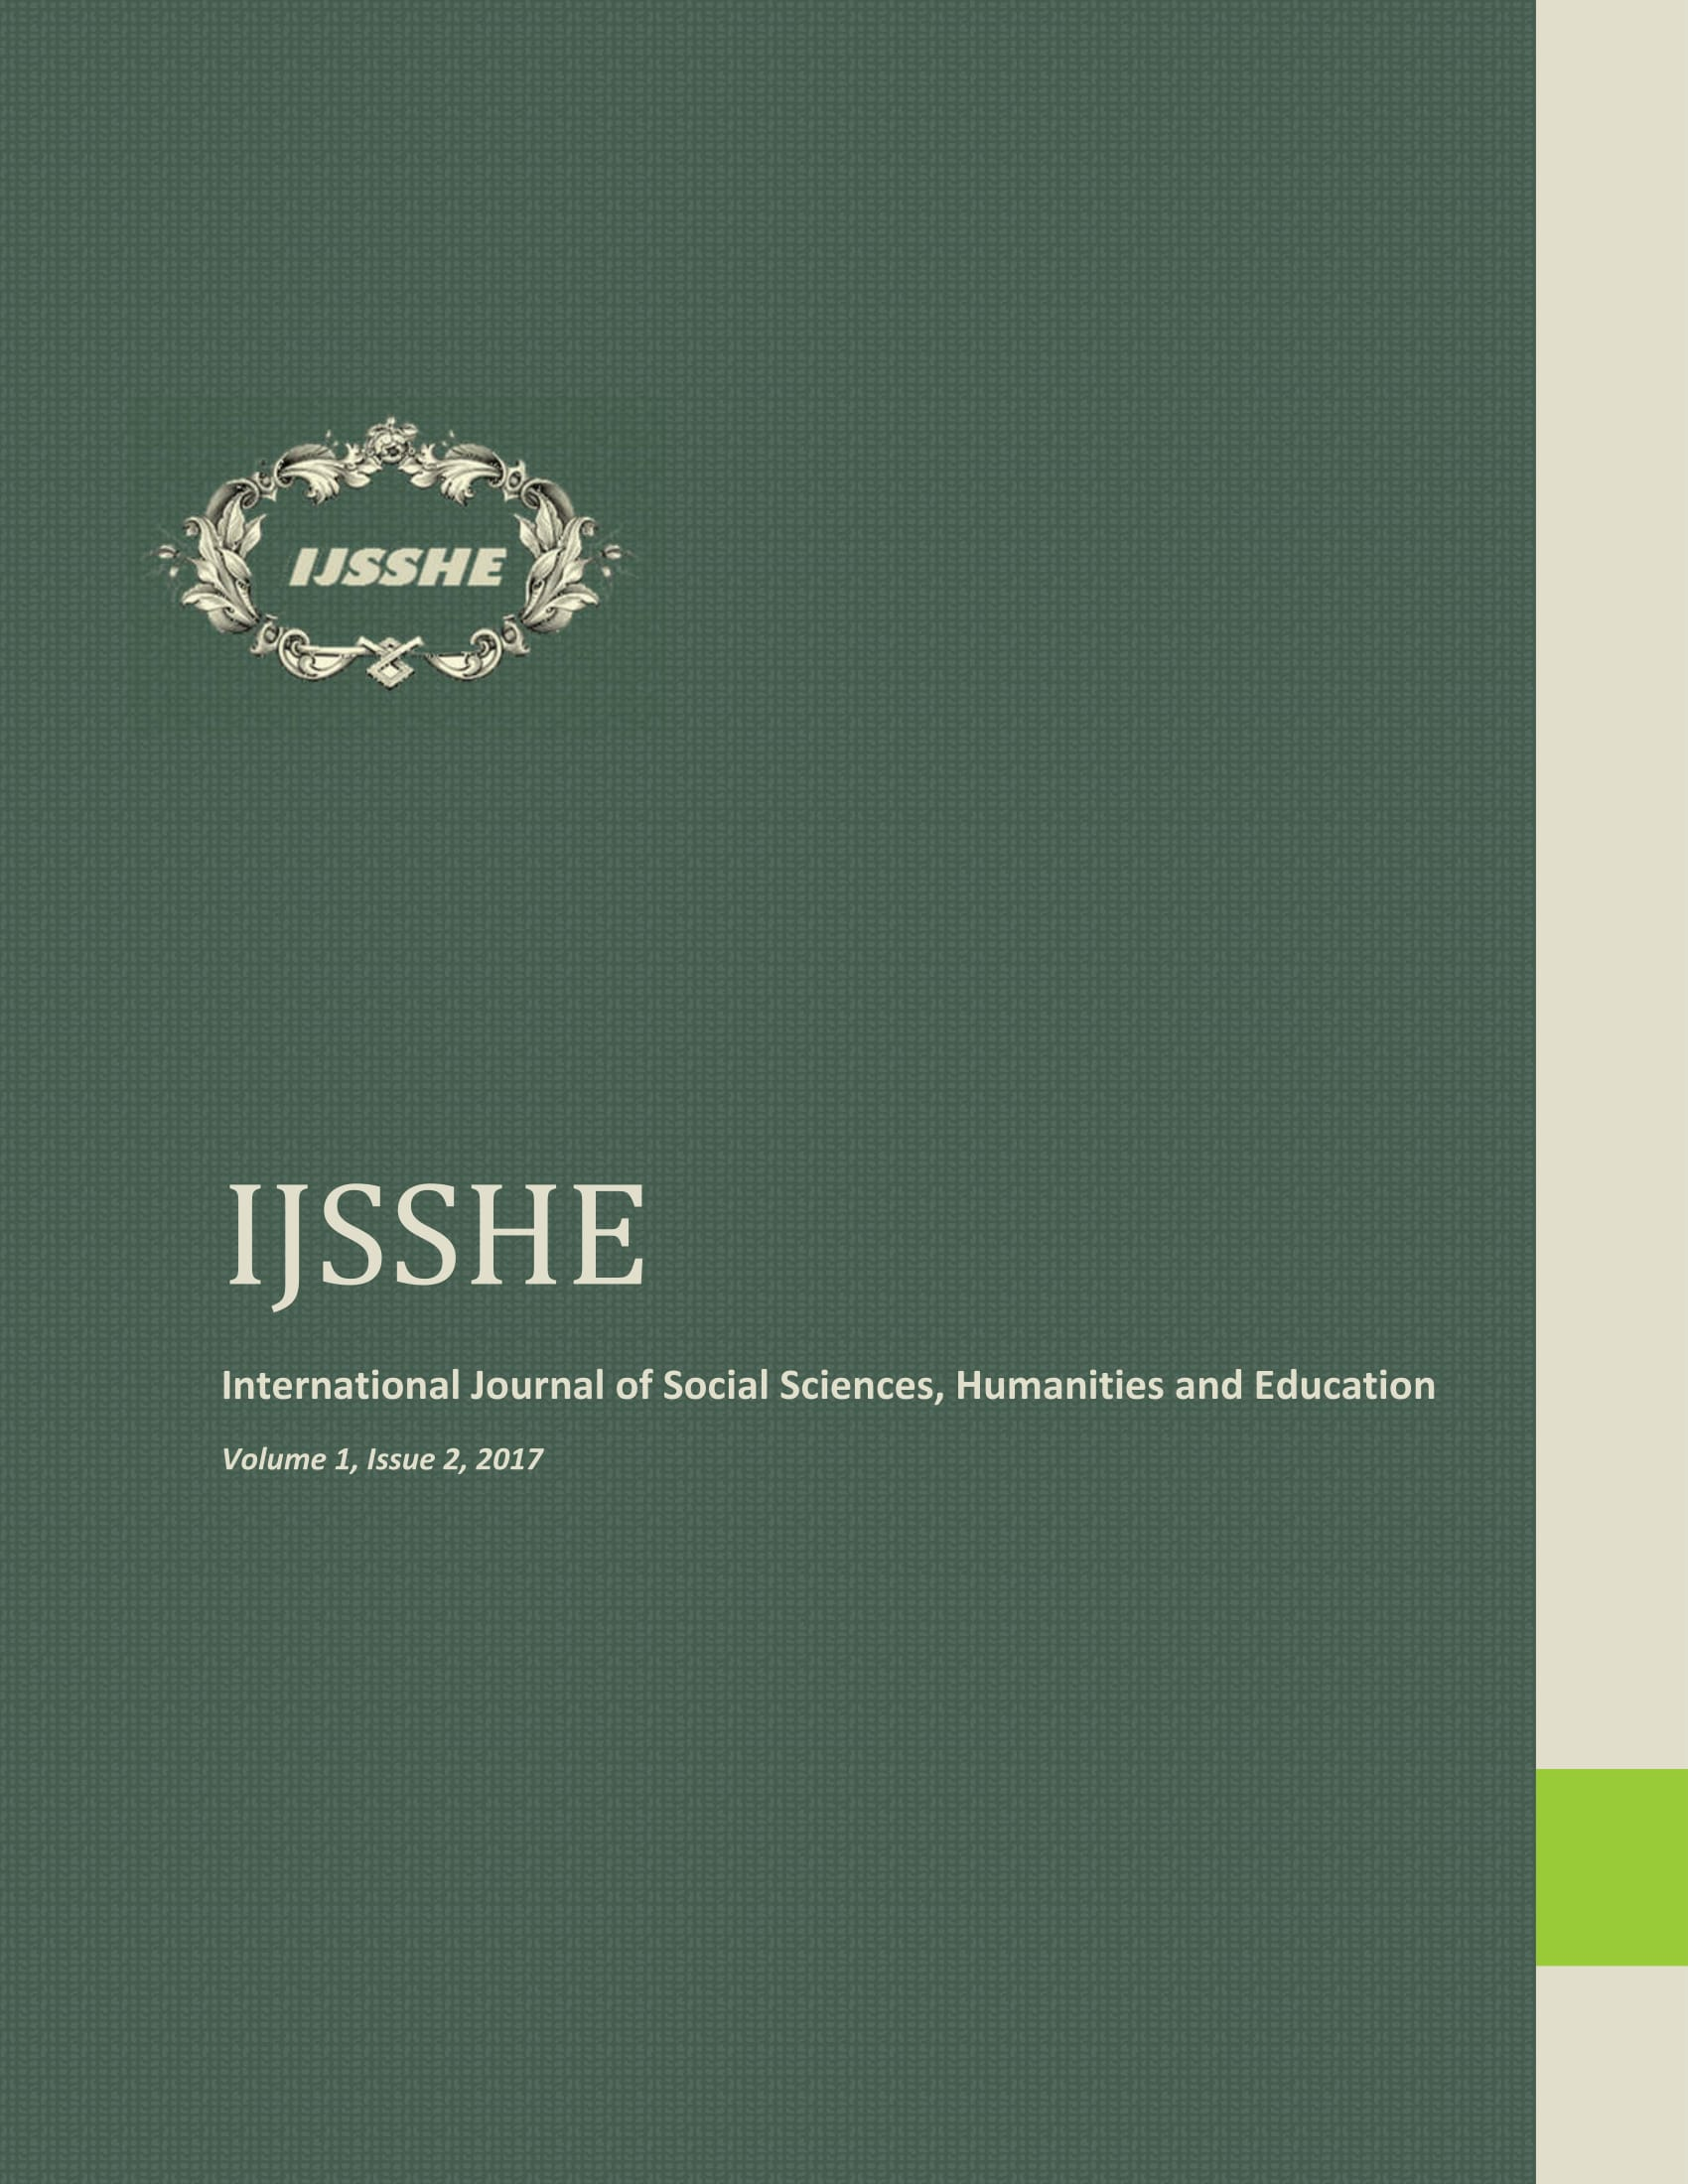 IJSSHE Vol 1, Issue 2, 2017